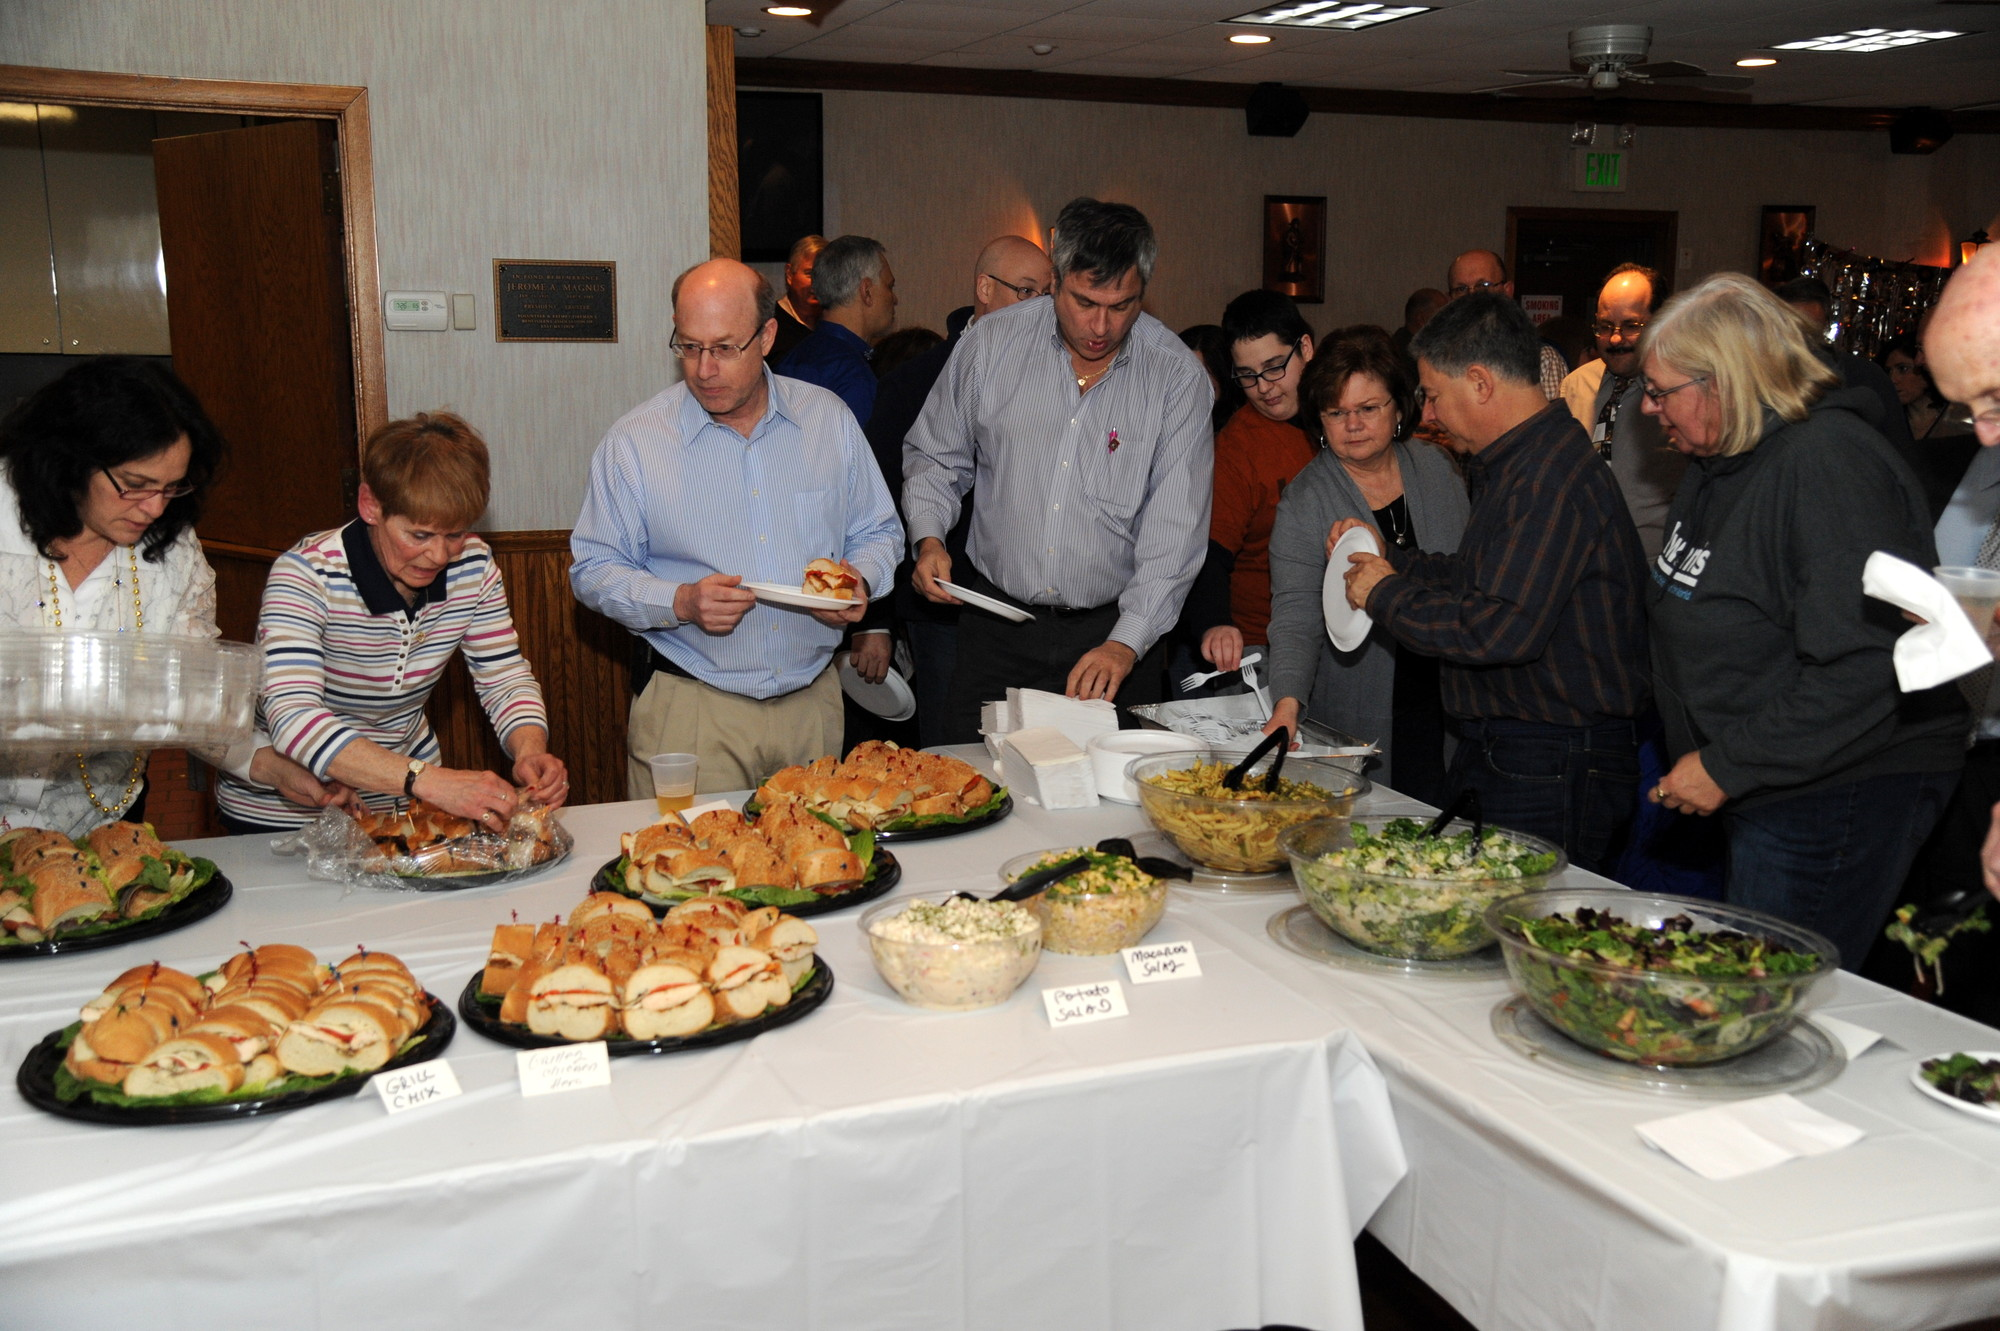 There was no shortage of food during the fundraiser at the East Meadow Firefighters' Benevolent Hall on Maple Avenue.